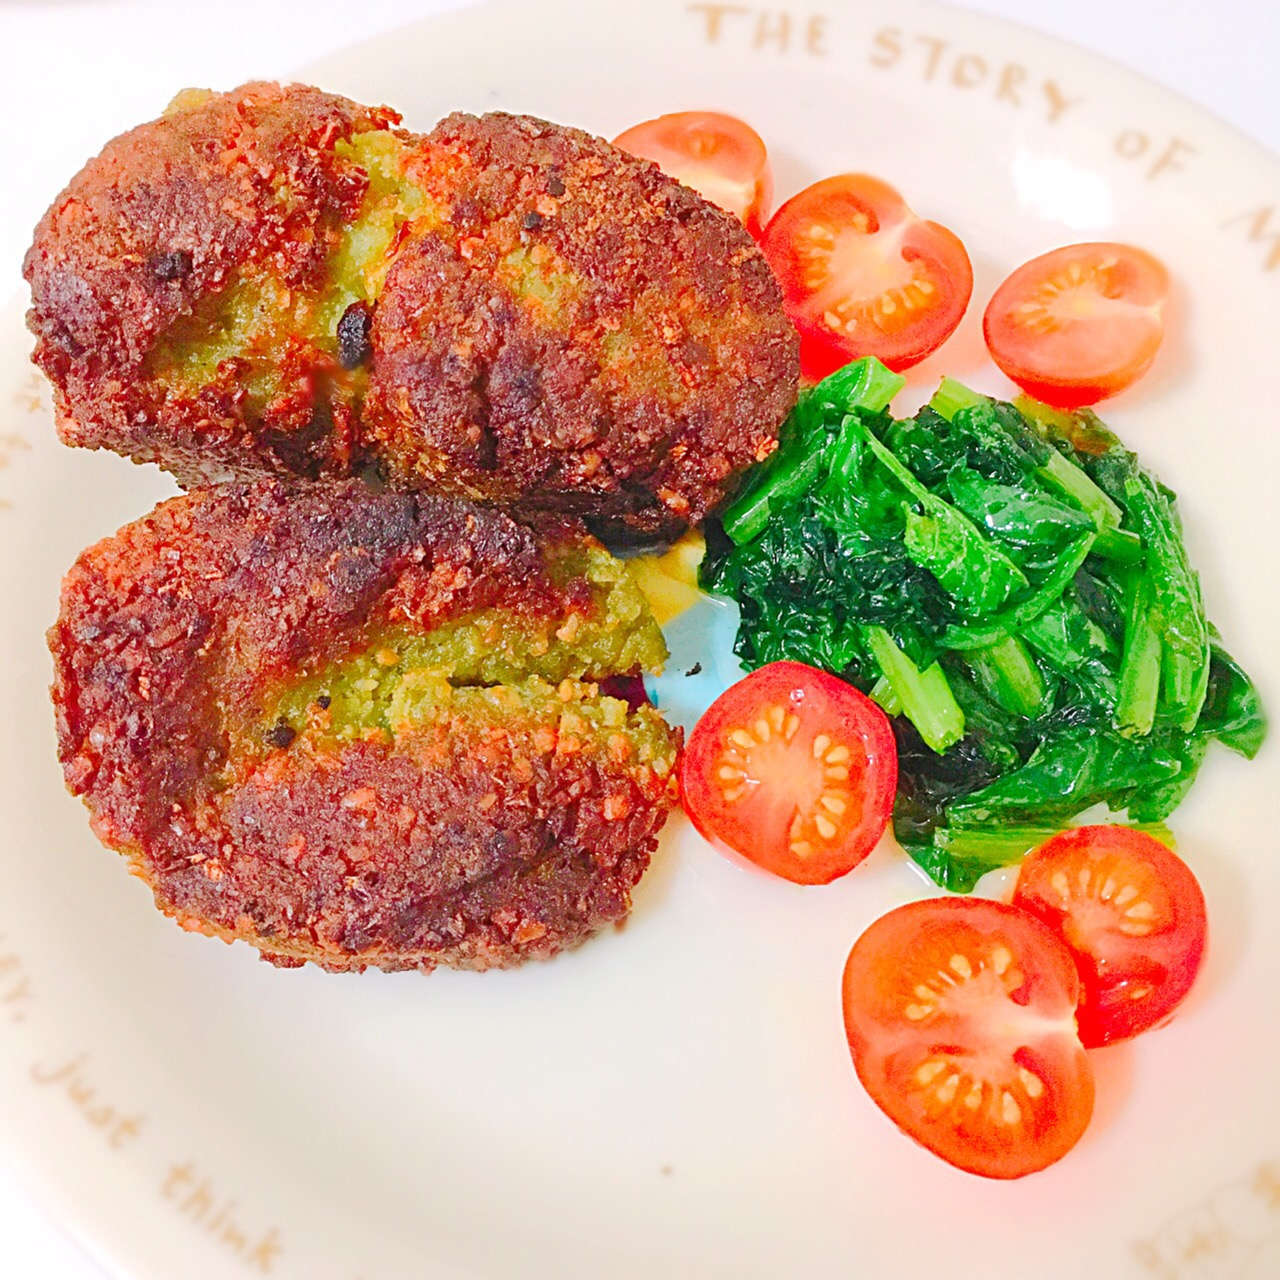 Falafel with spinach, the Middle Eastern cuisine made of chickpeas